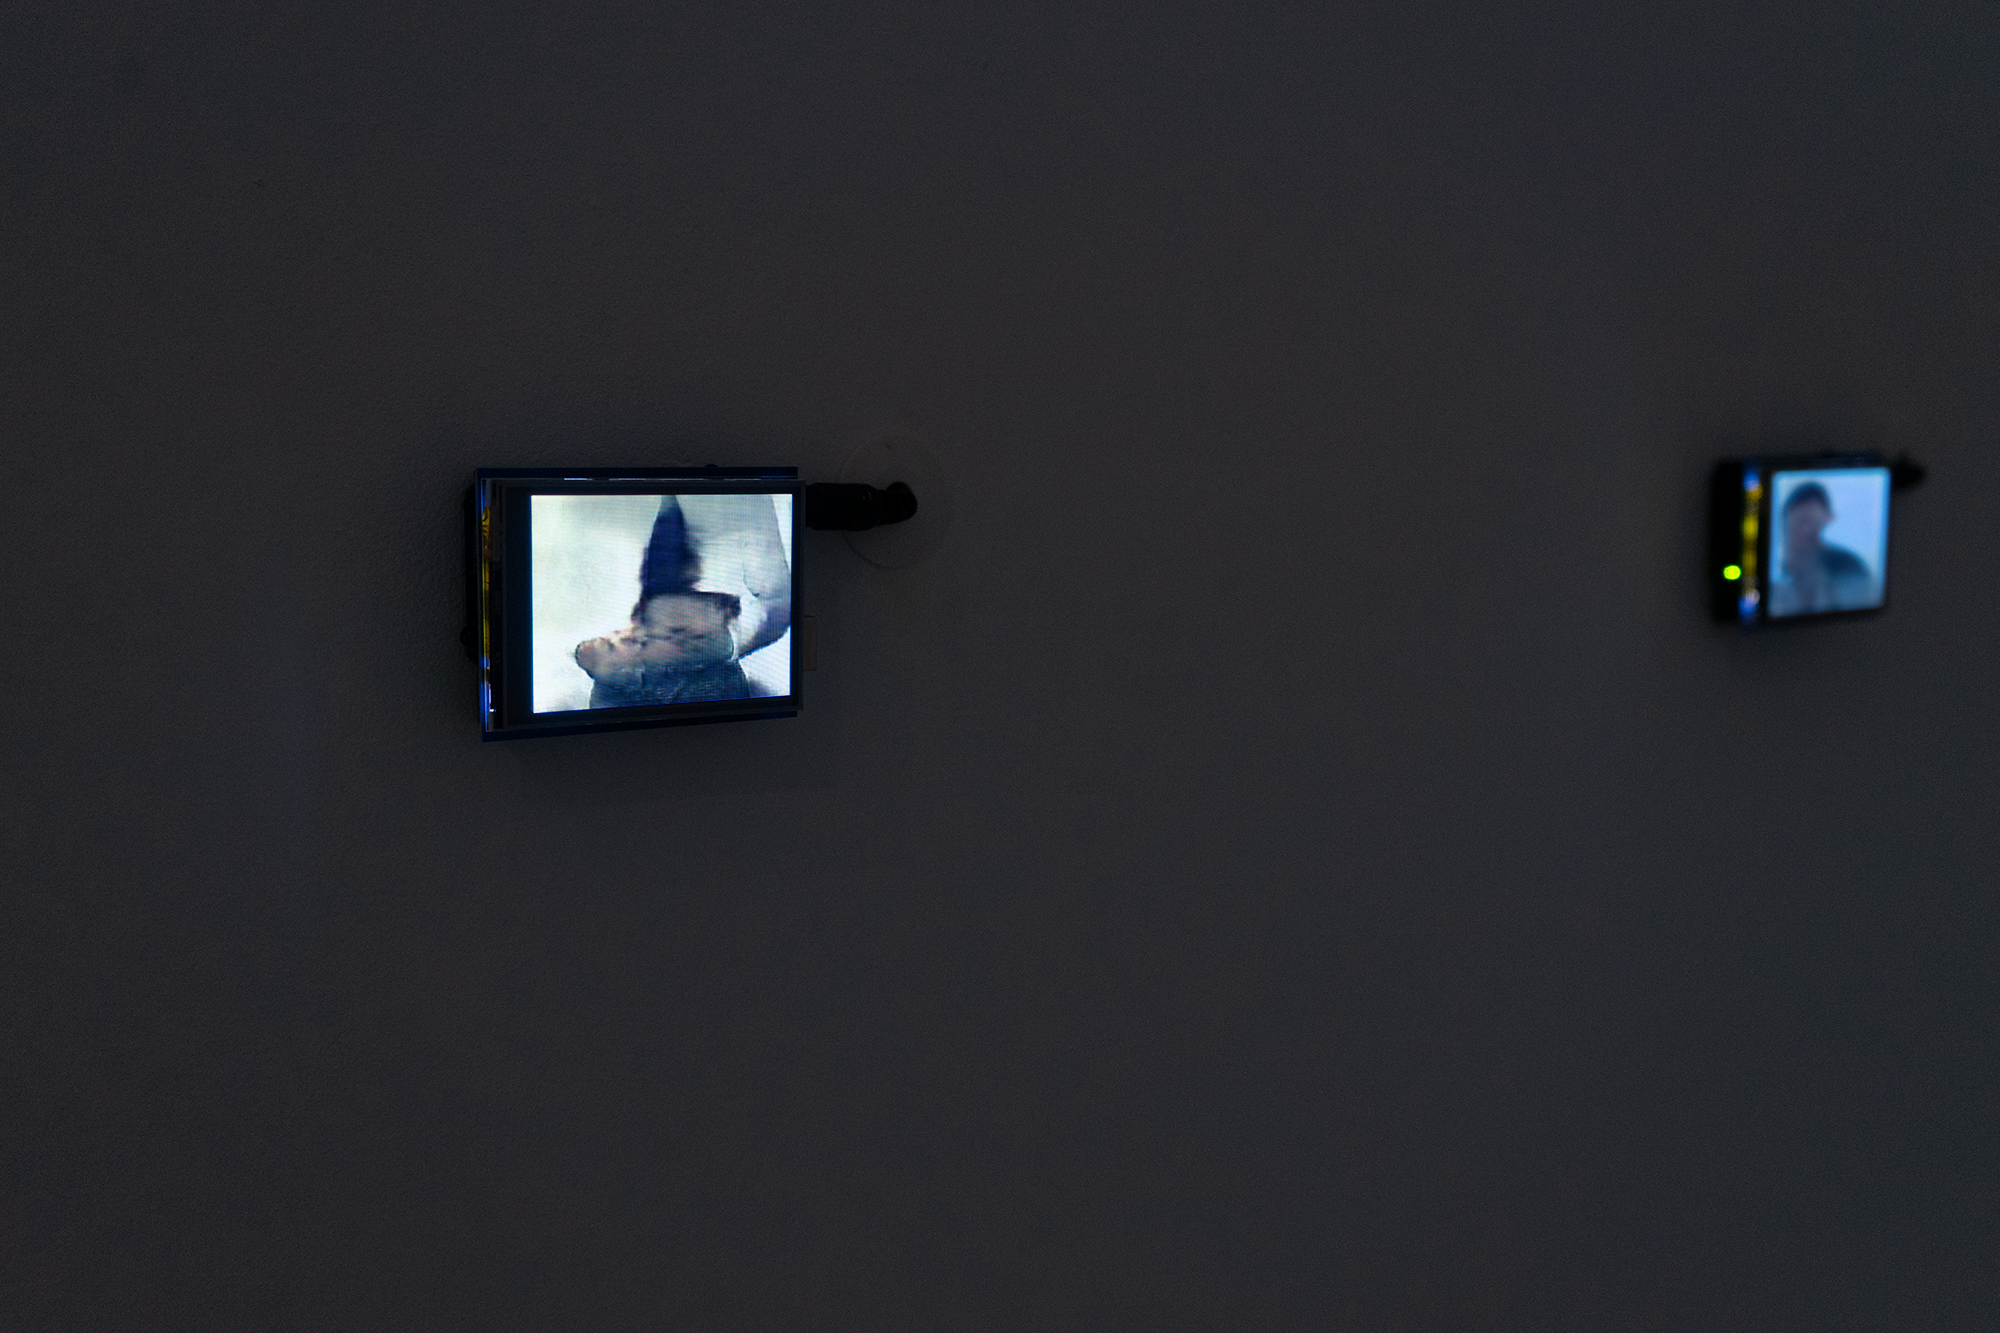 A closeup photo of two (out of 10 total in the installation) bright LCDs displaying a static image that loosely resemble human beings. The screen is attached to a microcontroller and hangs on the wall with four pushpins. A 12 volt power supply connects at the bottom of the microcontroller and then threads into the wall.